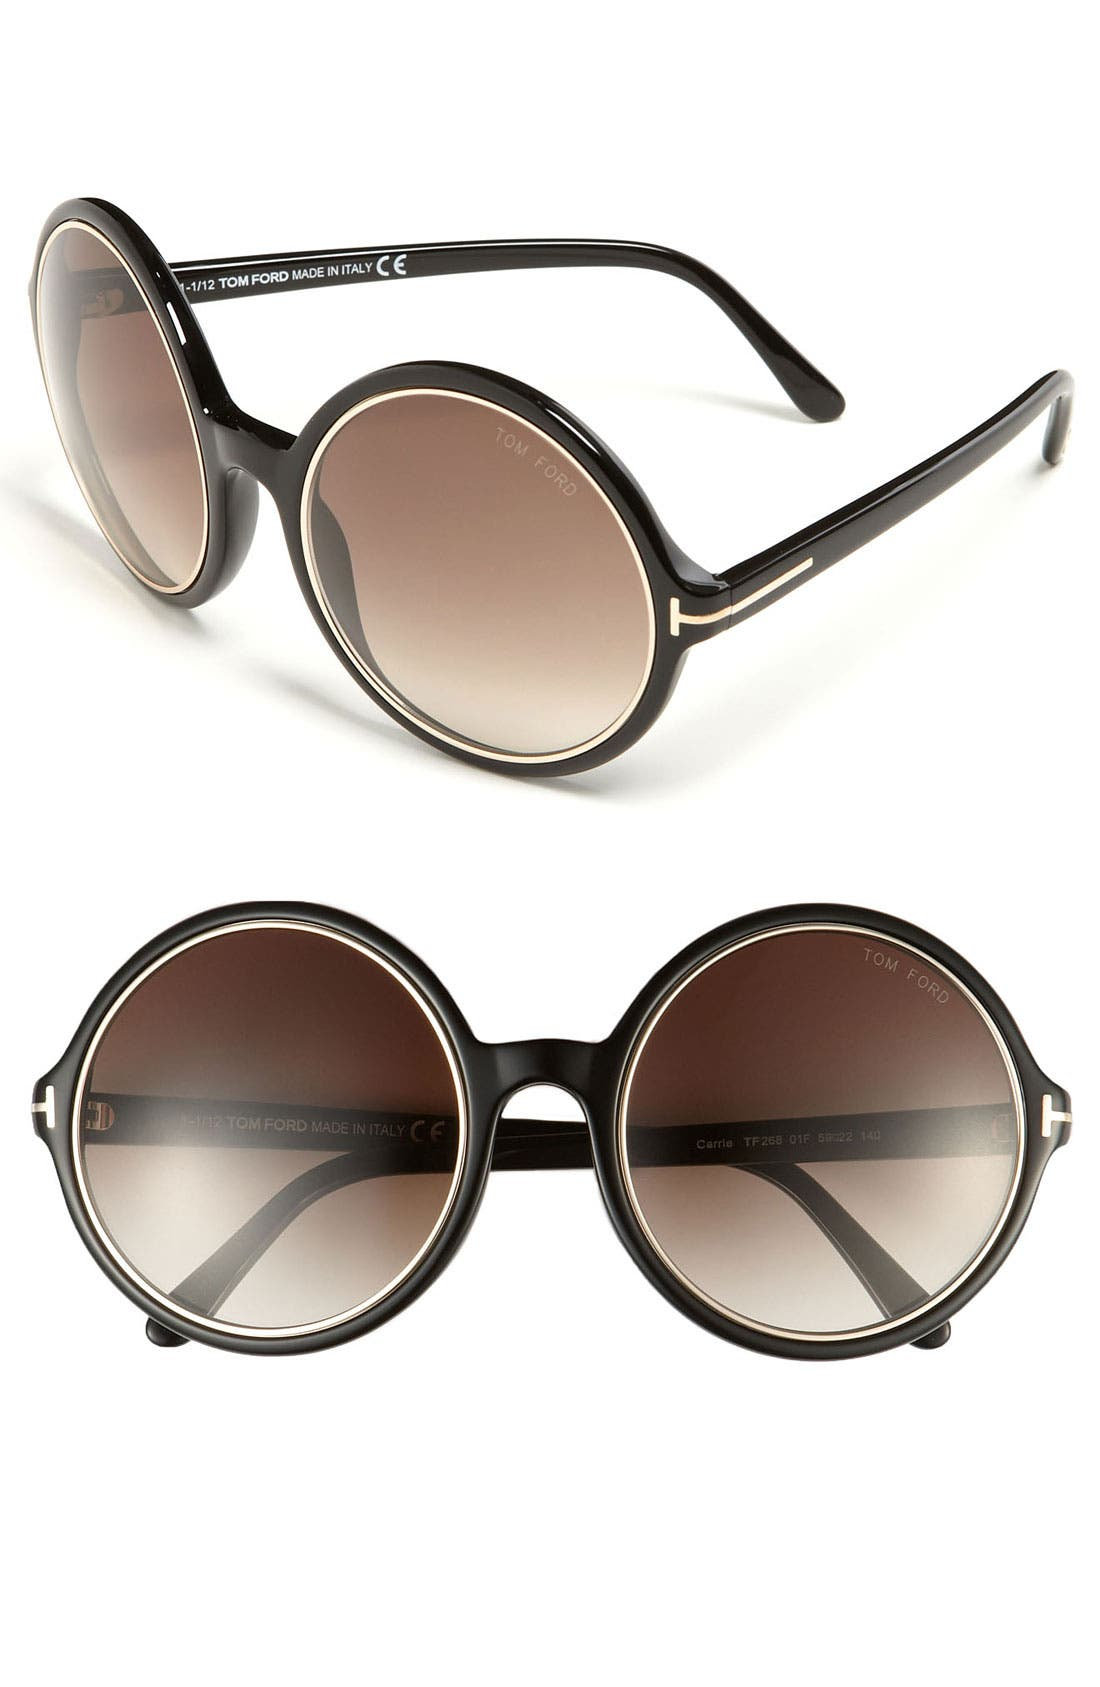 Main Image - Tom Ford 'Carrie' 59mm Round Sunglasses